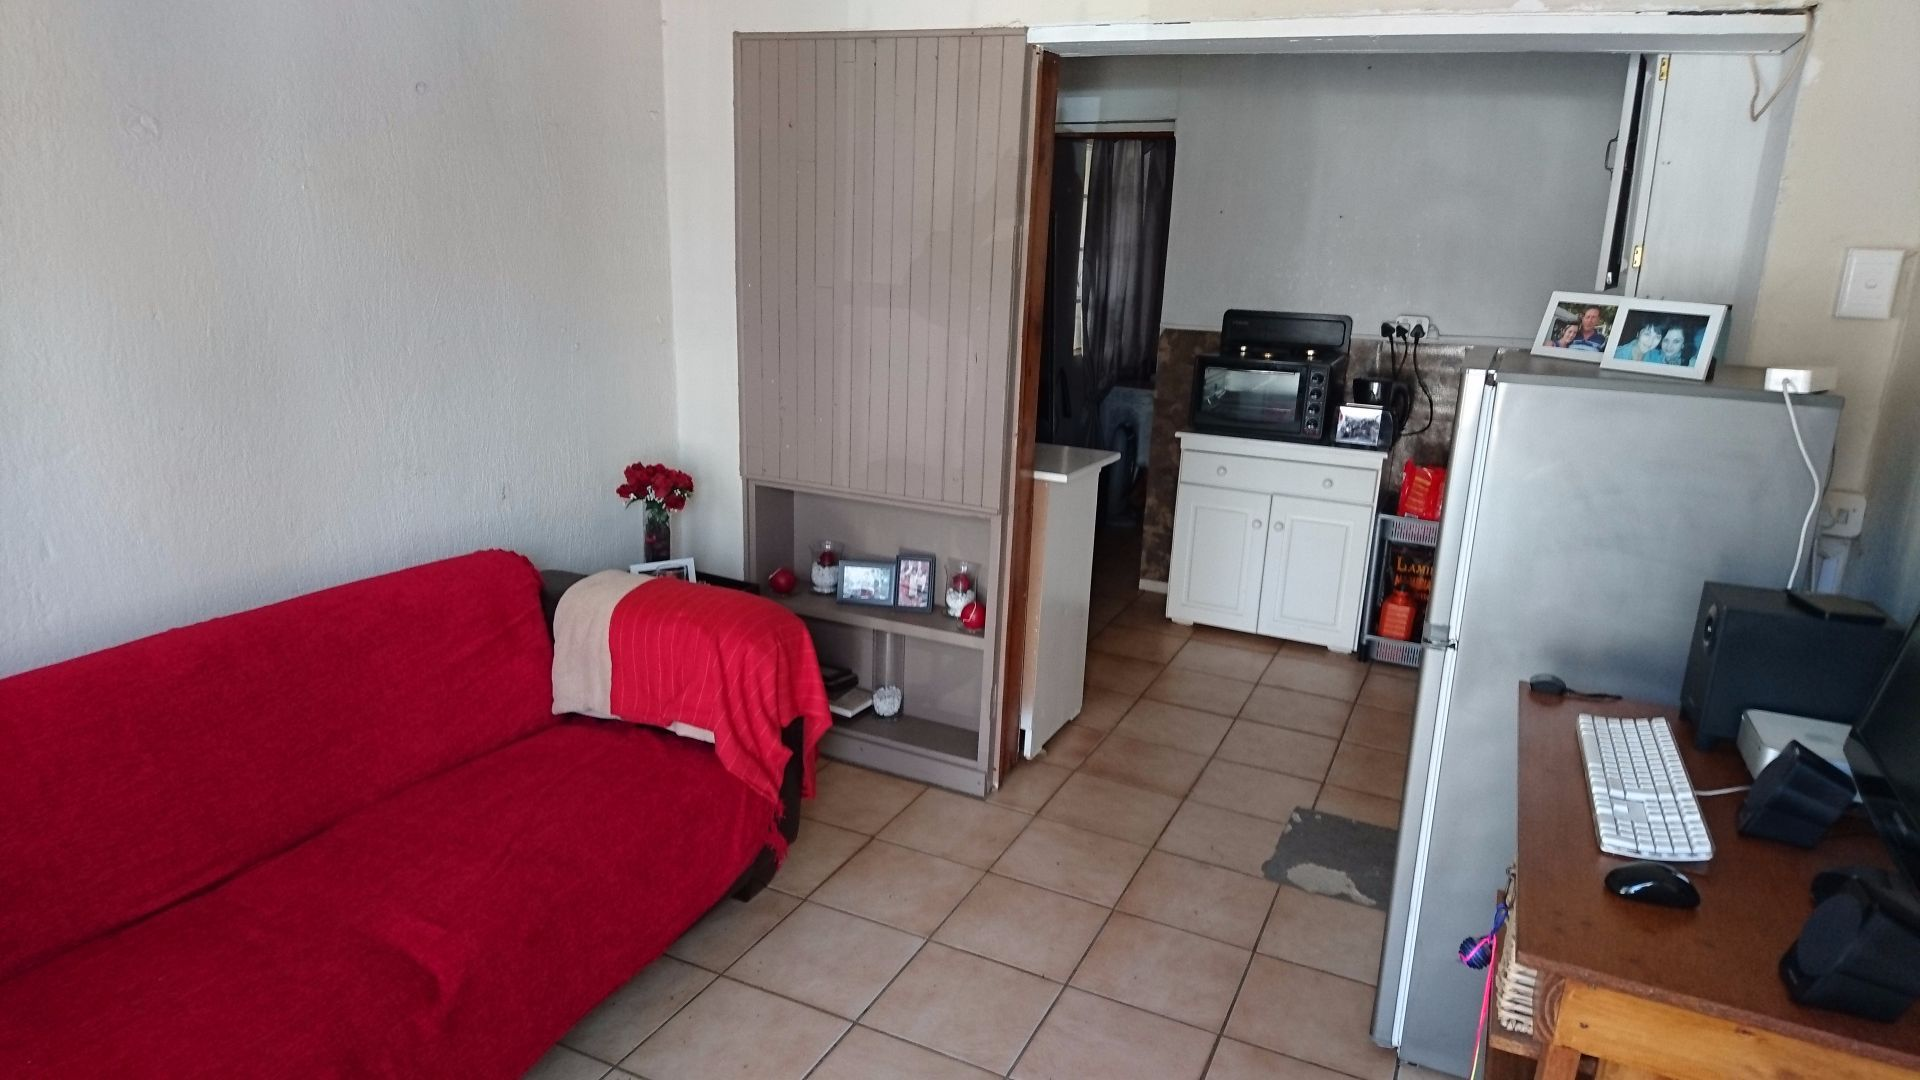 Suid Dorp property for sale. Ref No: 13504335. Picture no 23